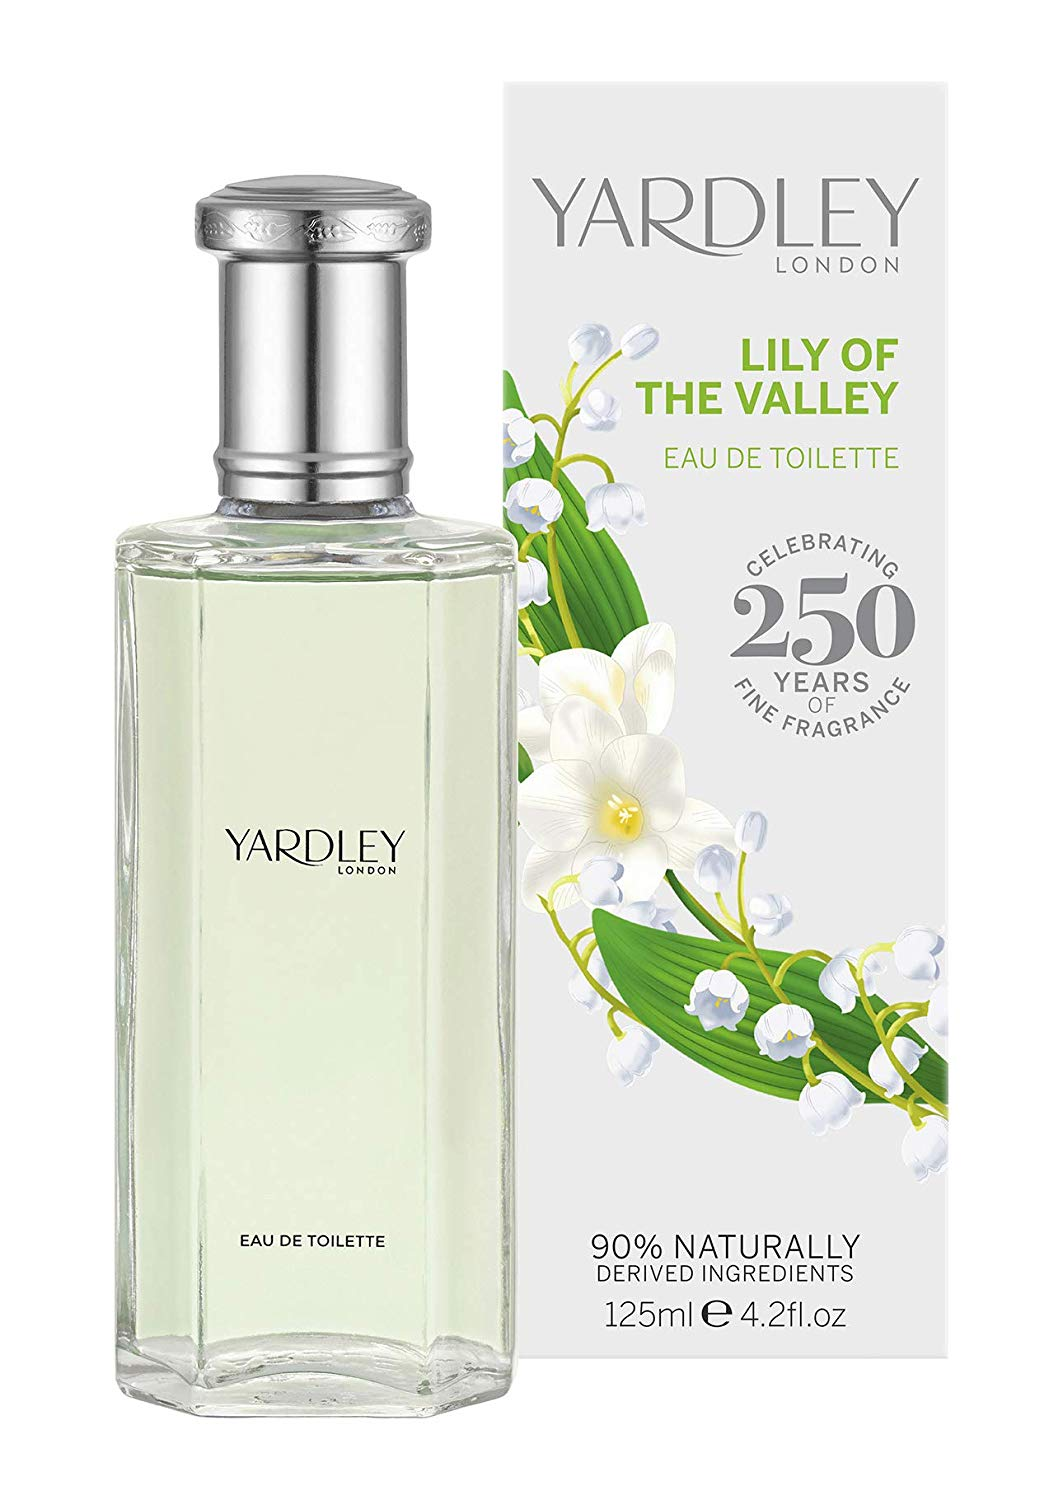 Lily Of The Valley, Yardley